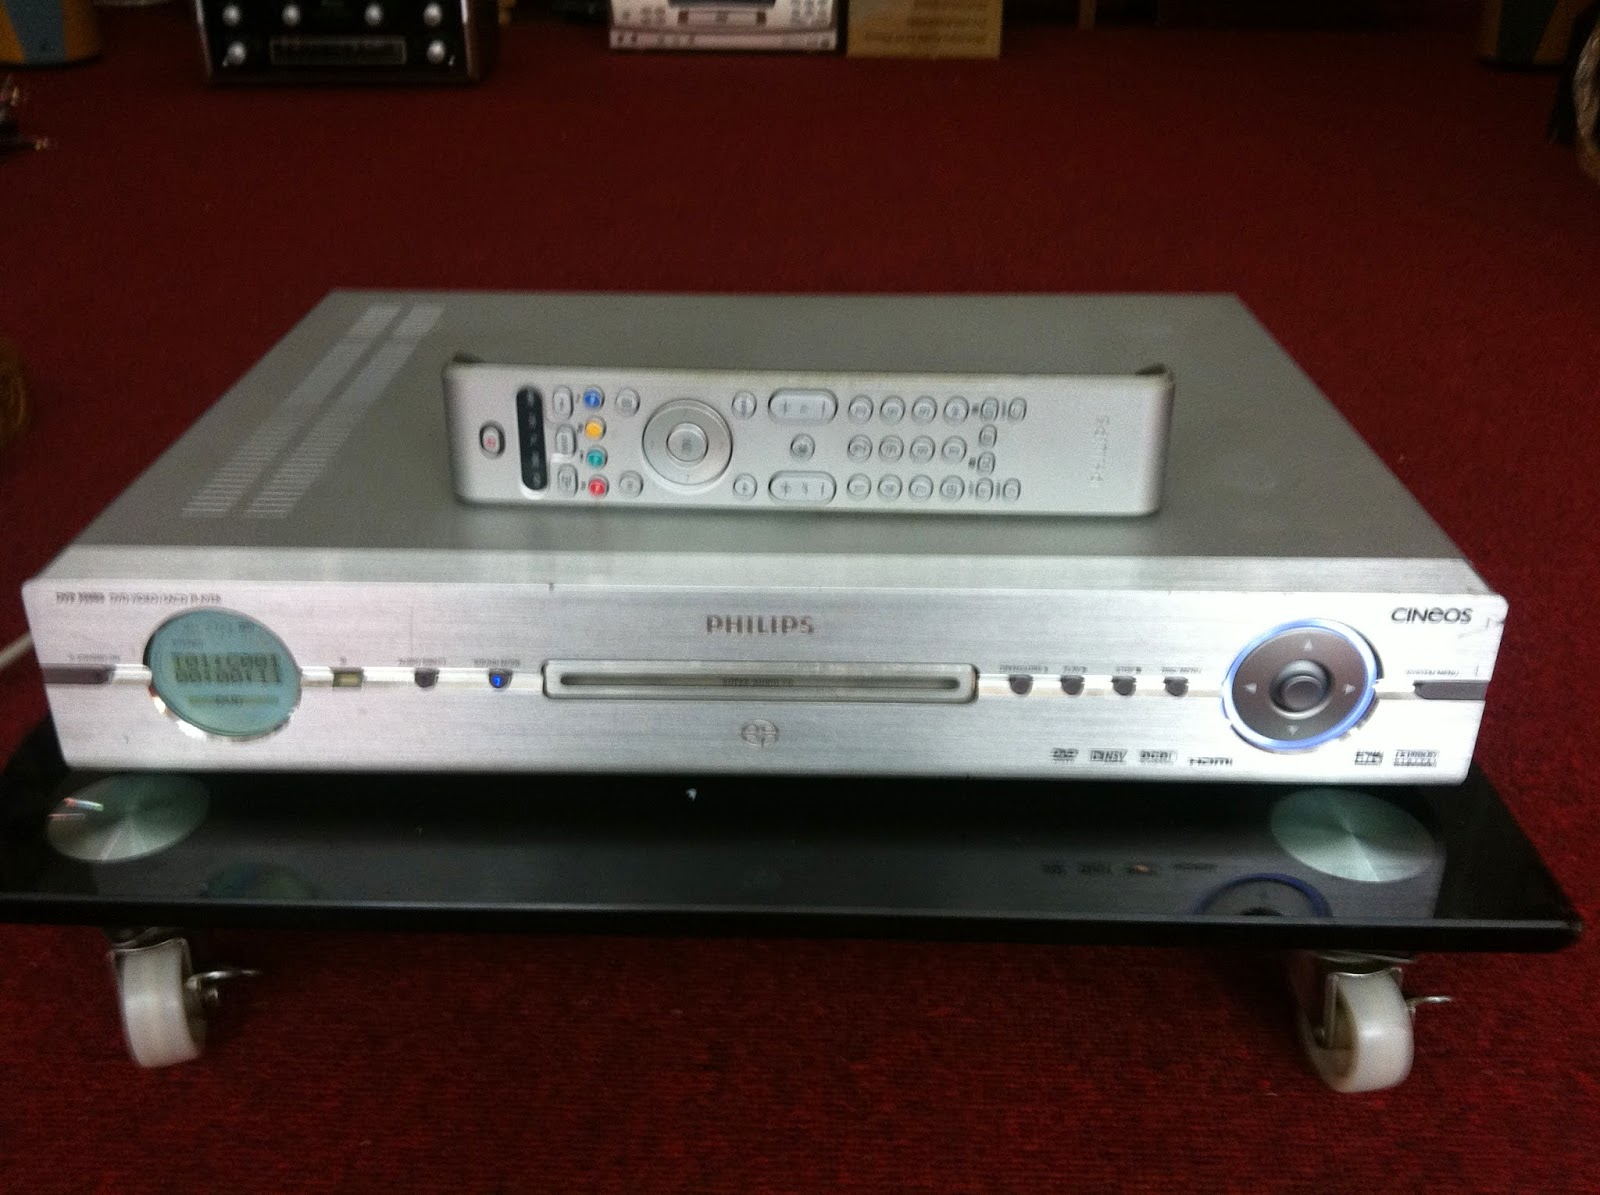 Đầu DVD Philips - model: DVP9000S